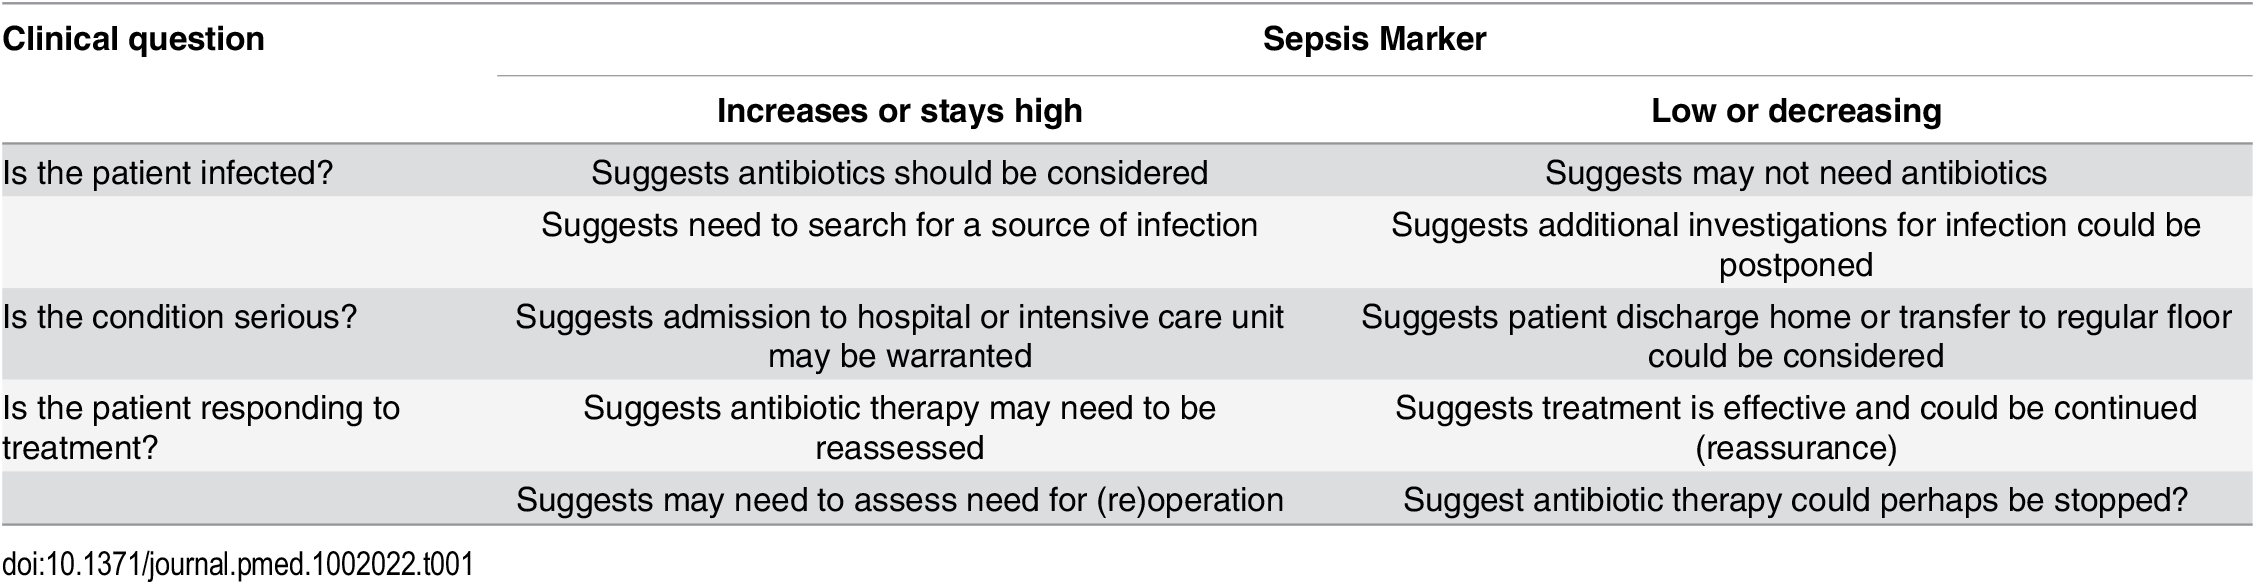 How a biomarker, levels of which increase in sepsis, can be used to answer clinically important questions.